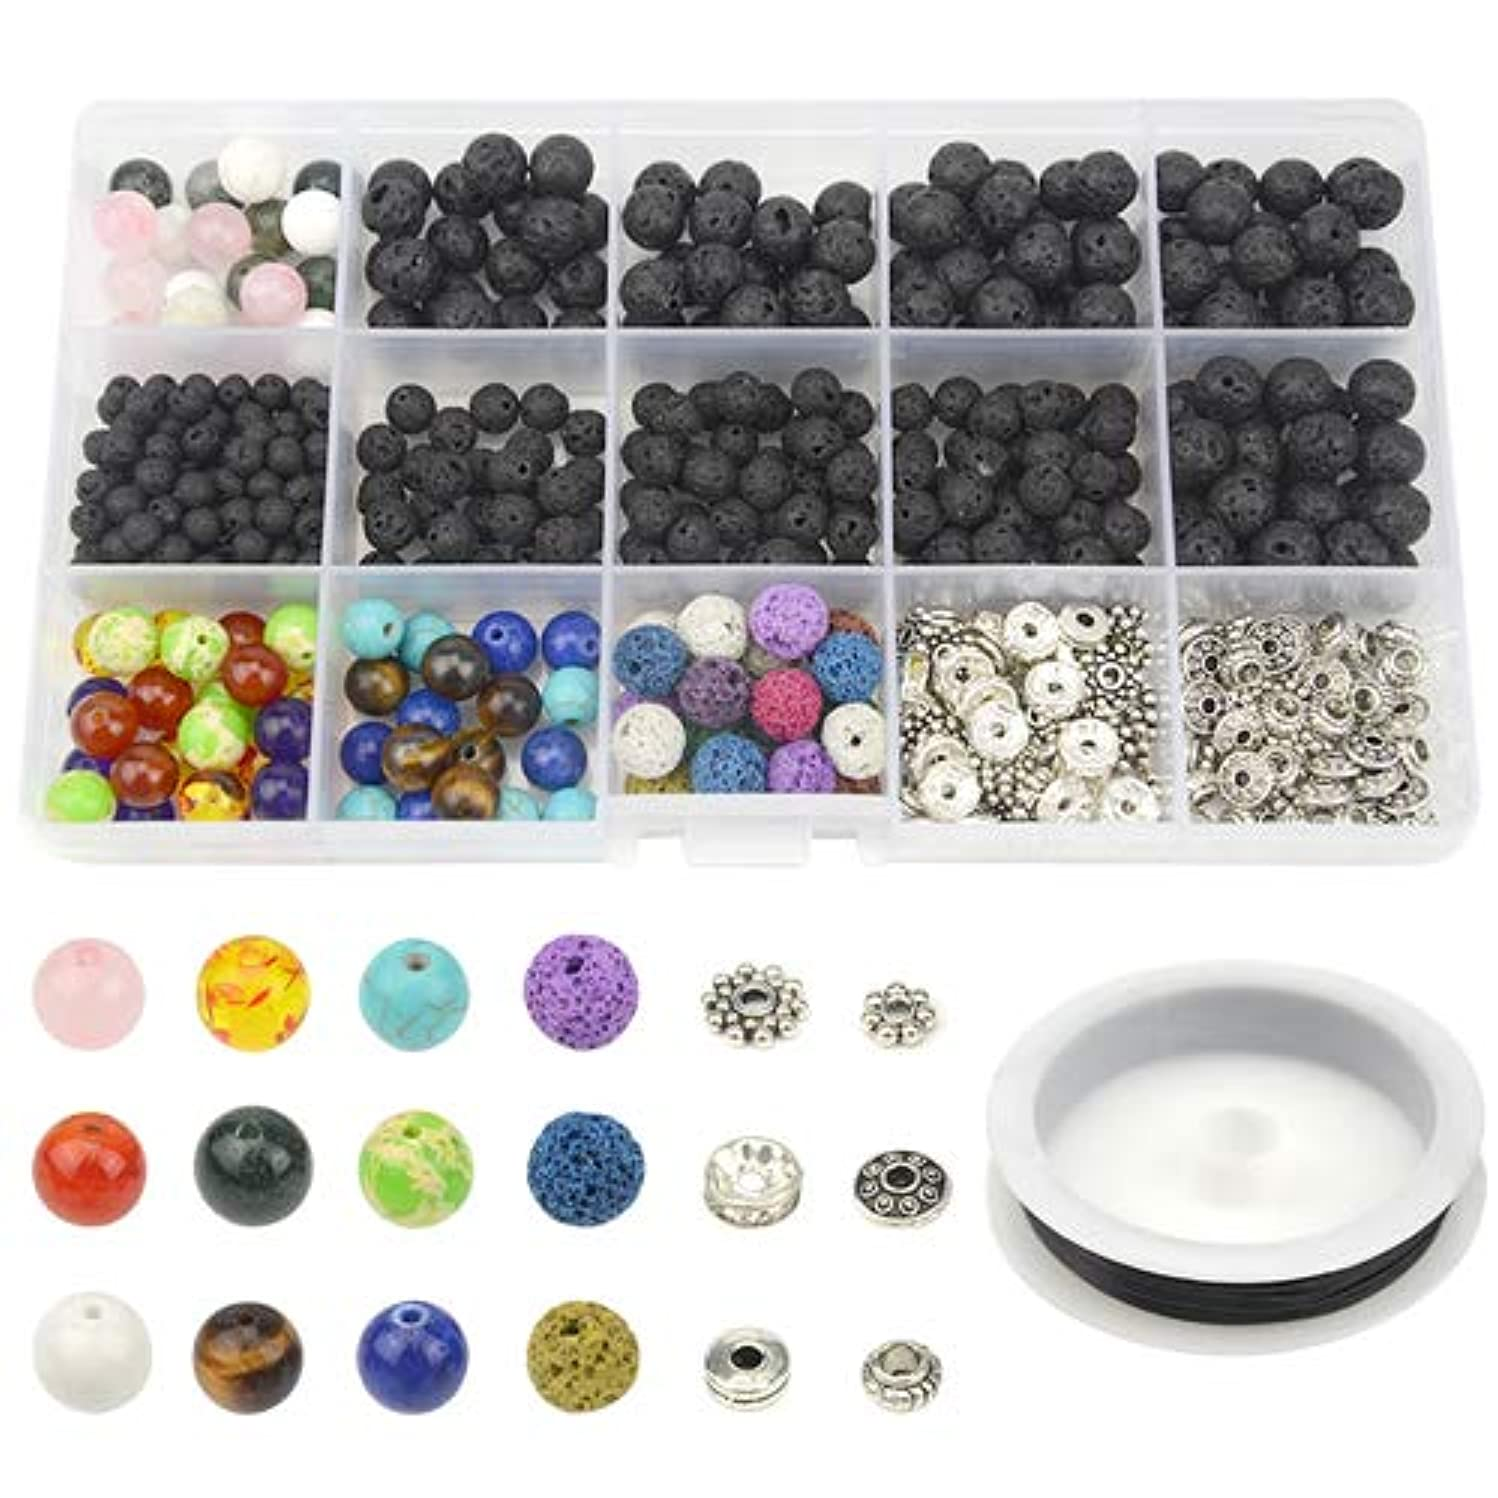 XLX 500PCS Round Chakra Beads Aquatic Agate Stone White?Turquoise Crystal Bead Composite Set Zinc Alloy Bead Accessory Colored Lava Rock Stone Volcanic Stone Bead with 1PCS Elastic Crystal String for